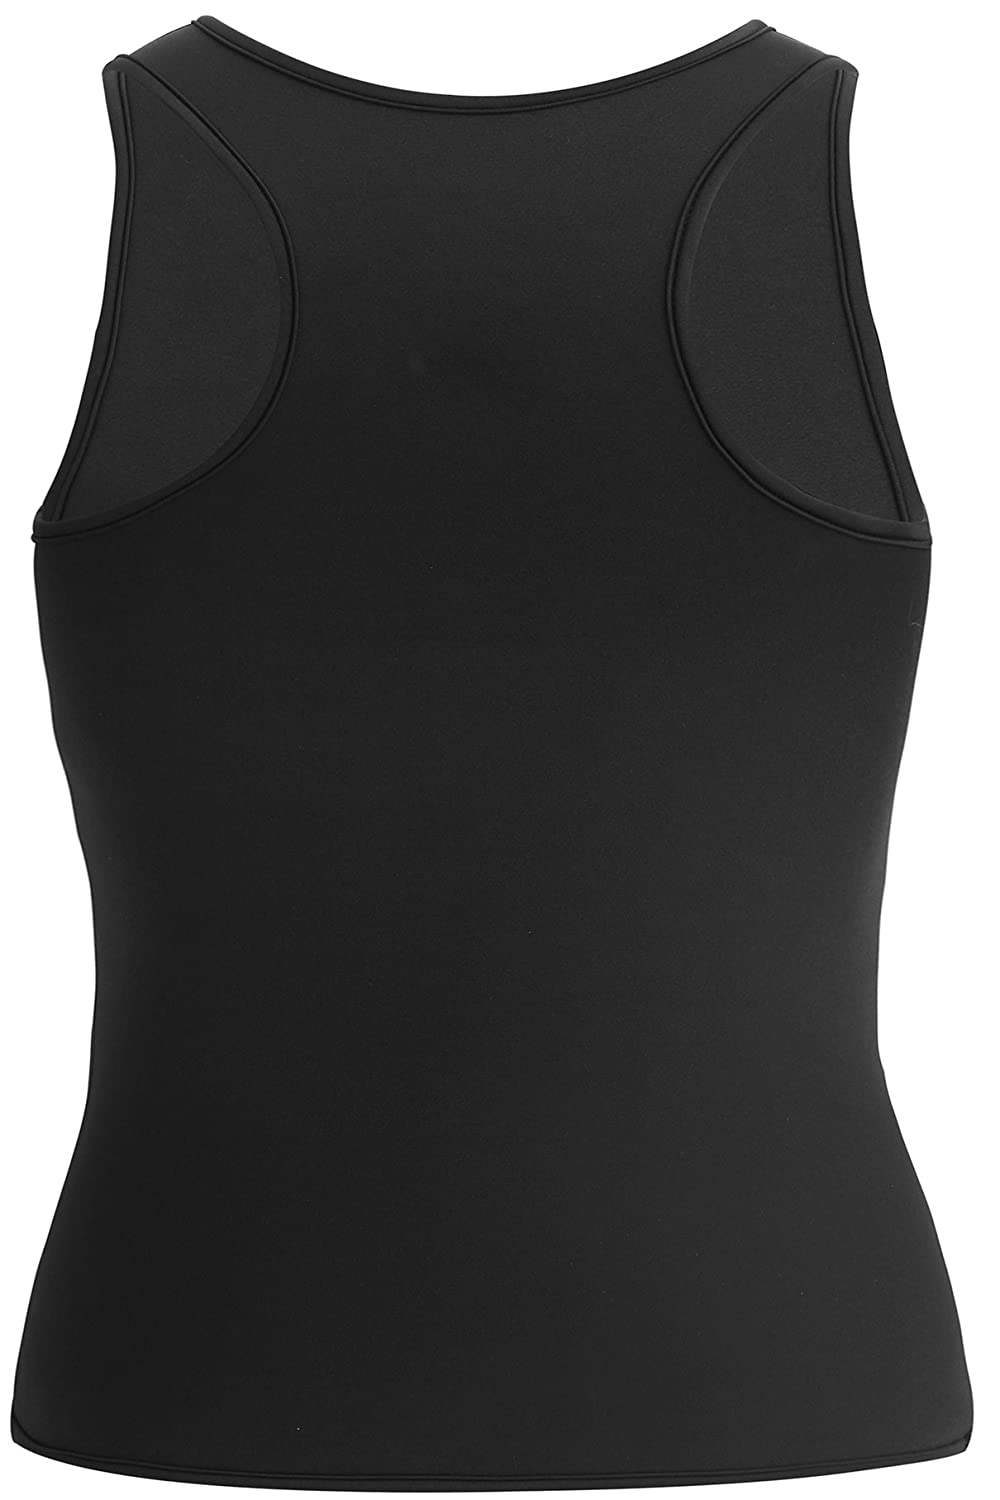 Mens Body Shaper Slimming Shirt Tummy Control Sauna Gym Vest for Weights Loss